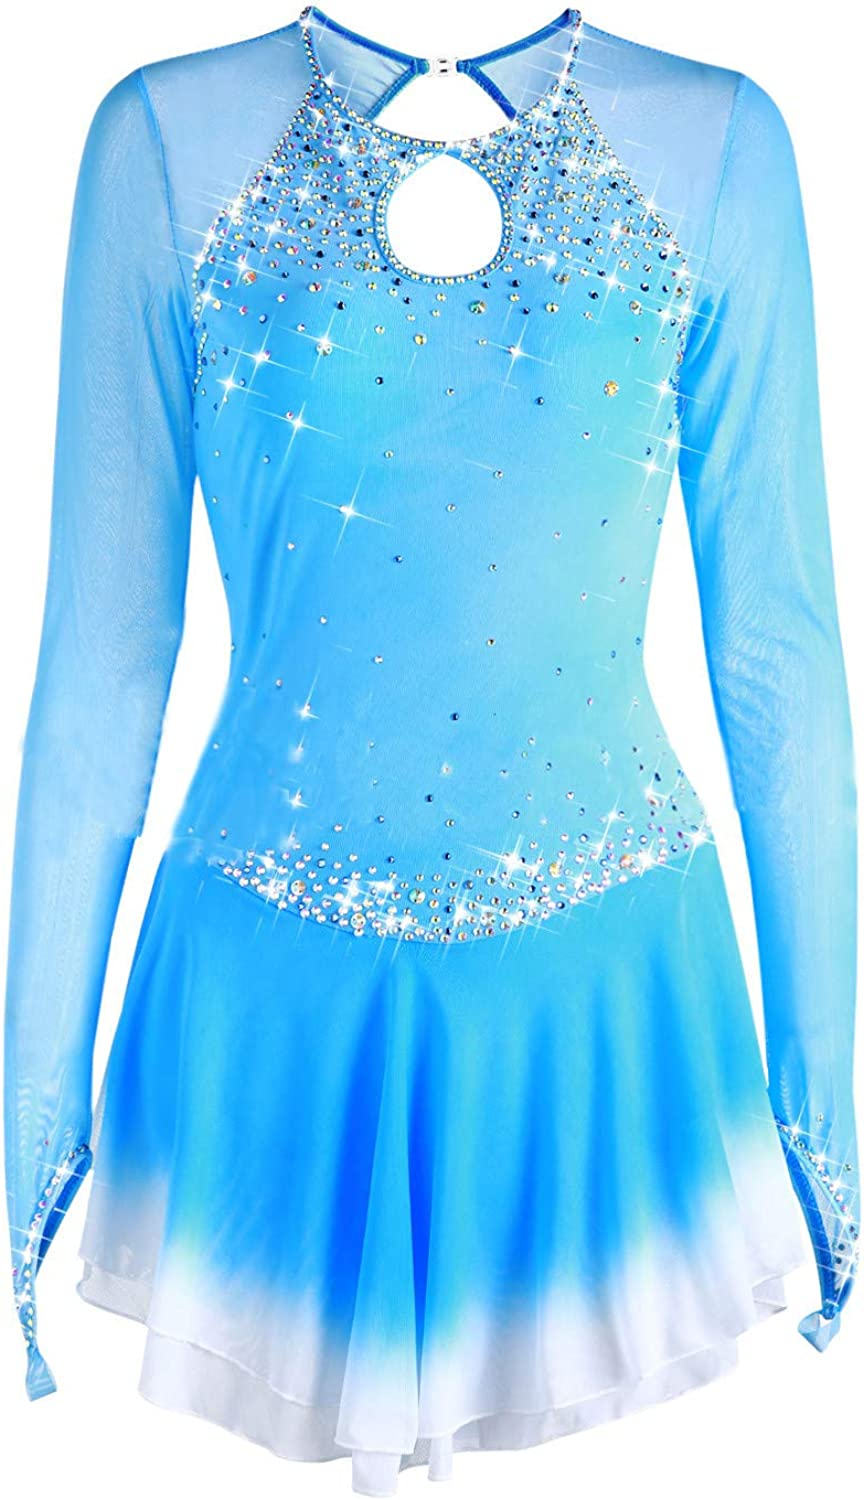 Heart&M Handmade Ice Skating Dress For Girls, Figure Skating Competition Professional Costume Crystals Long Sleeved Light bluee